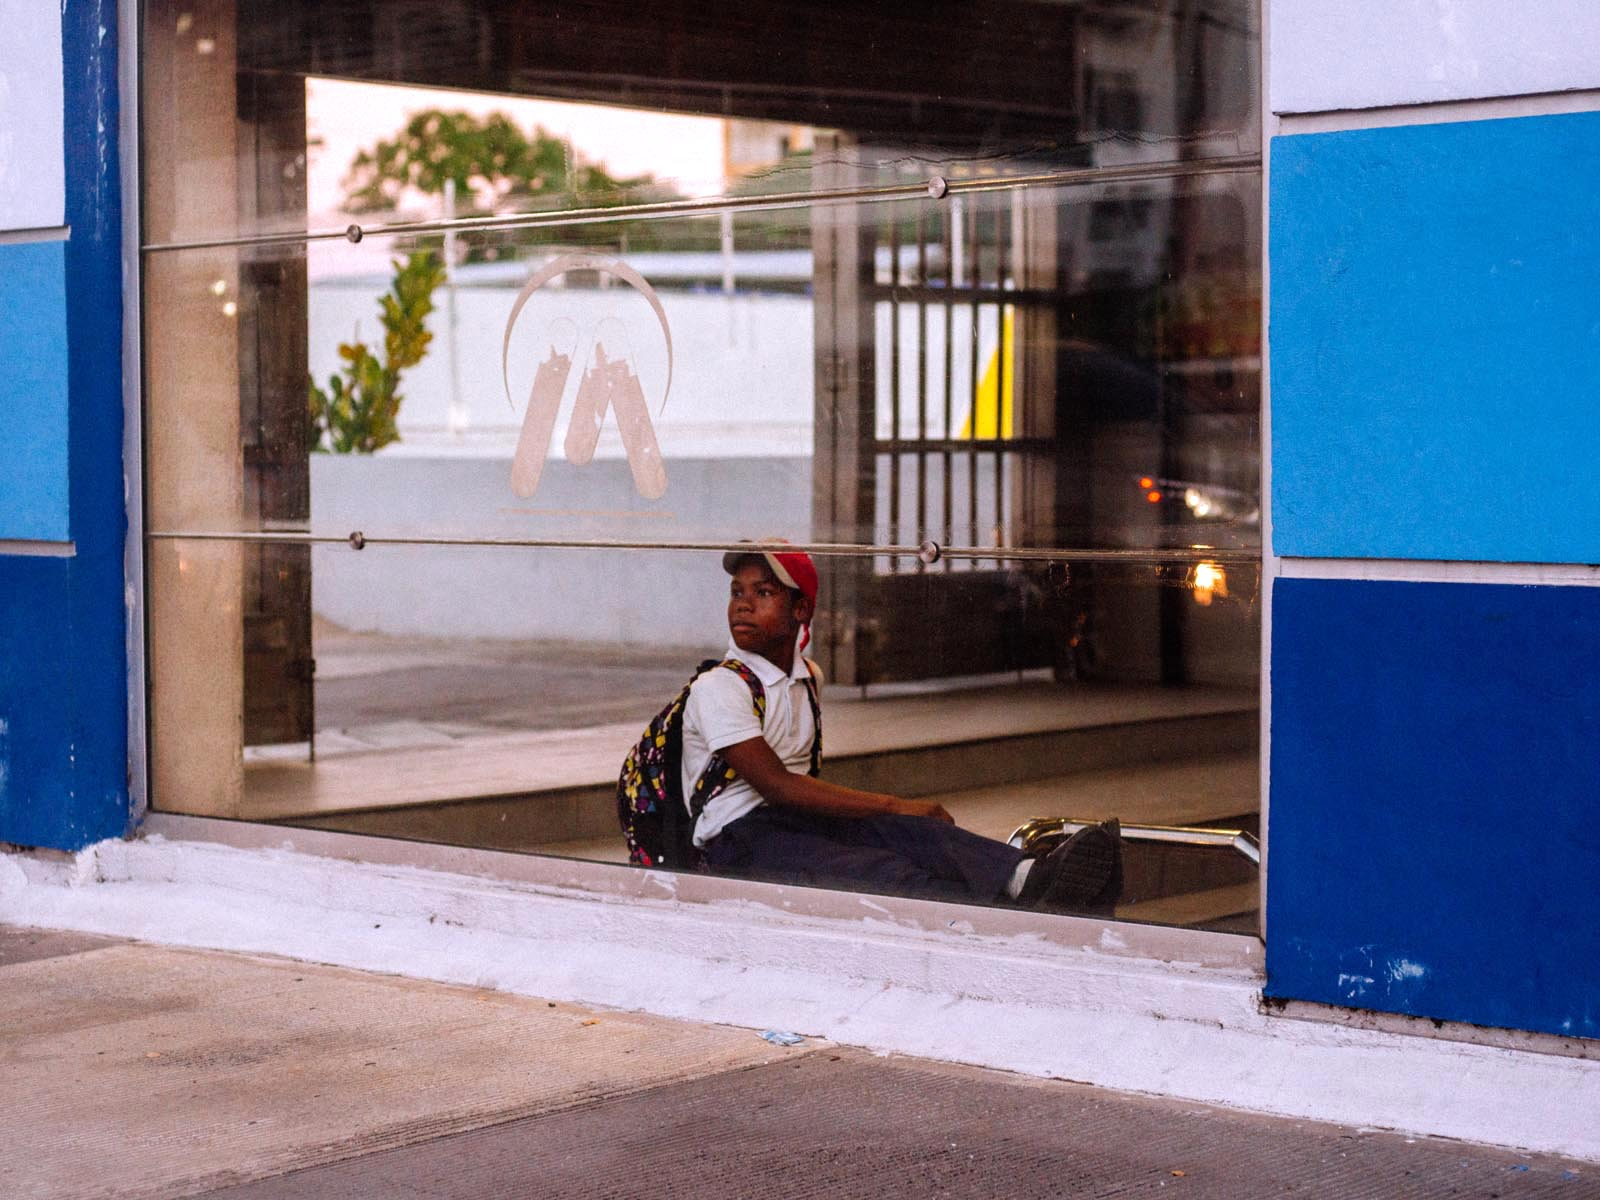 At the moment of writing, I'm exploring the streets of Santo Domingo, Dominican Republic.